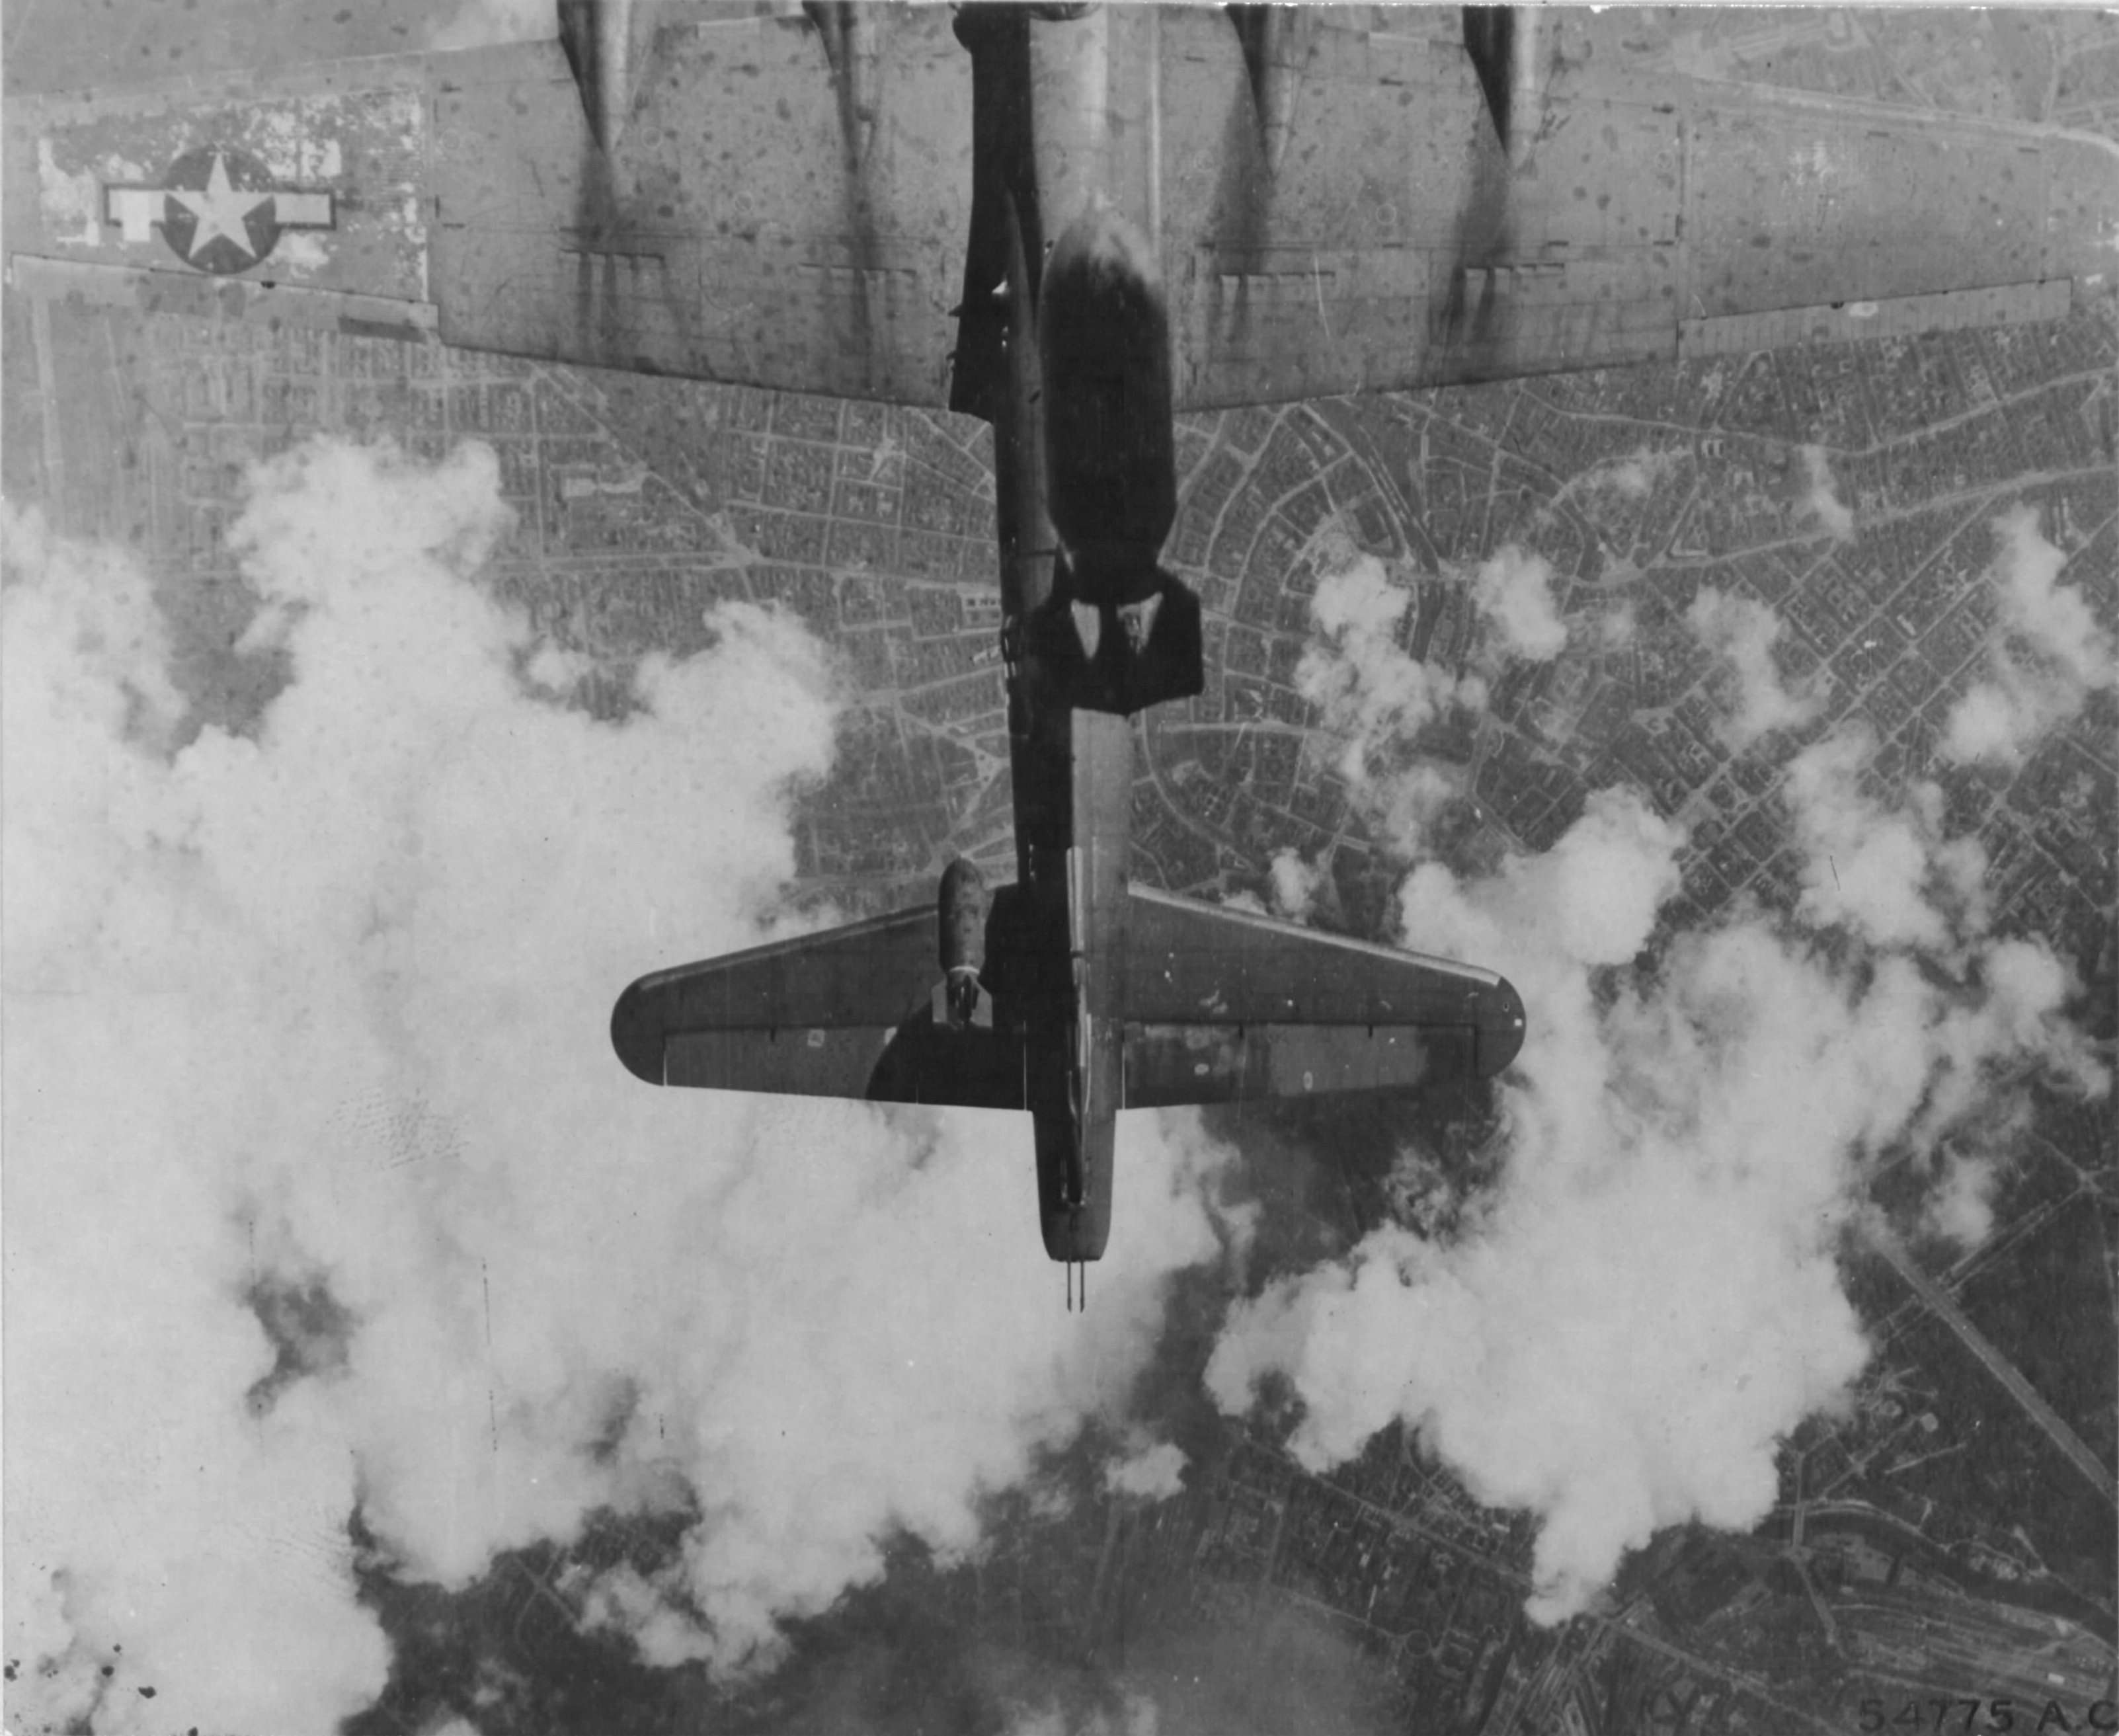 B-17G Fortress 'Miss Donna Mae II' drifted under another bomber on a bomb run over Berlin, 19 May 1944. A 1,000 lb bomb from above tore off the left stabilizer and sent the plane into an uncontrollable spin. All 11 were killed. Photo 1 of 4